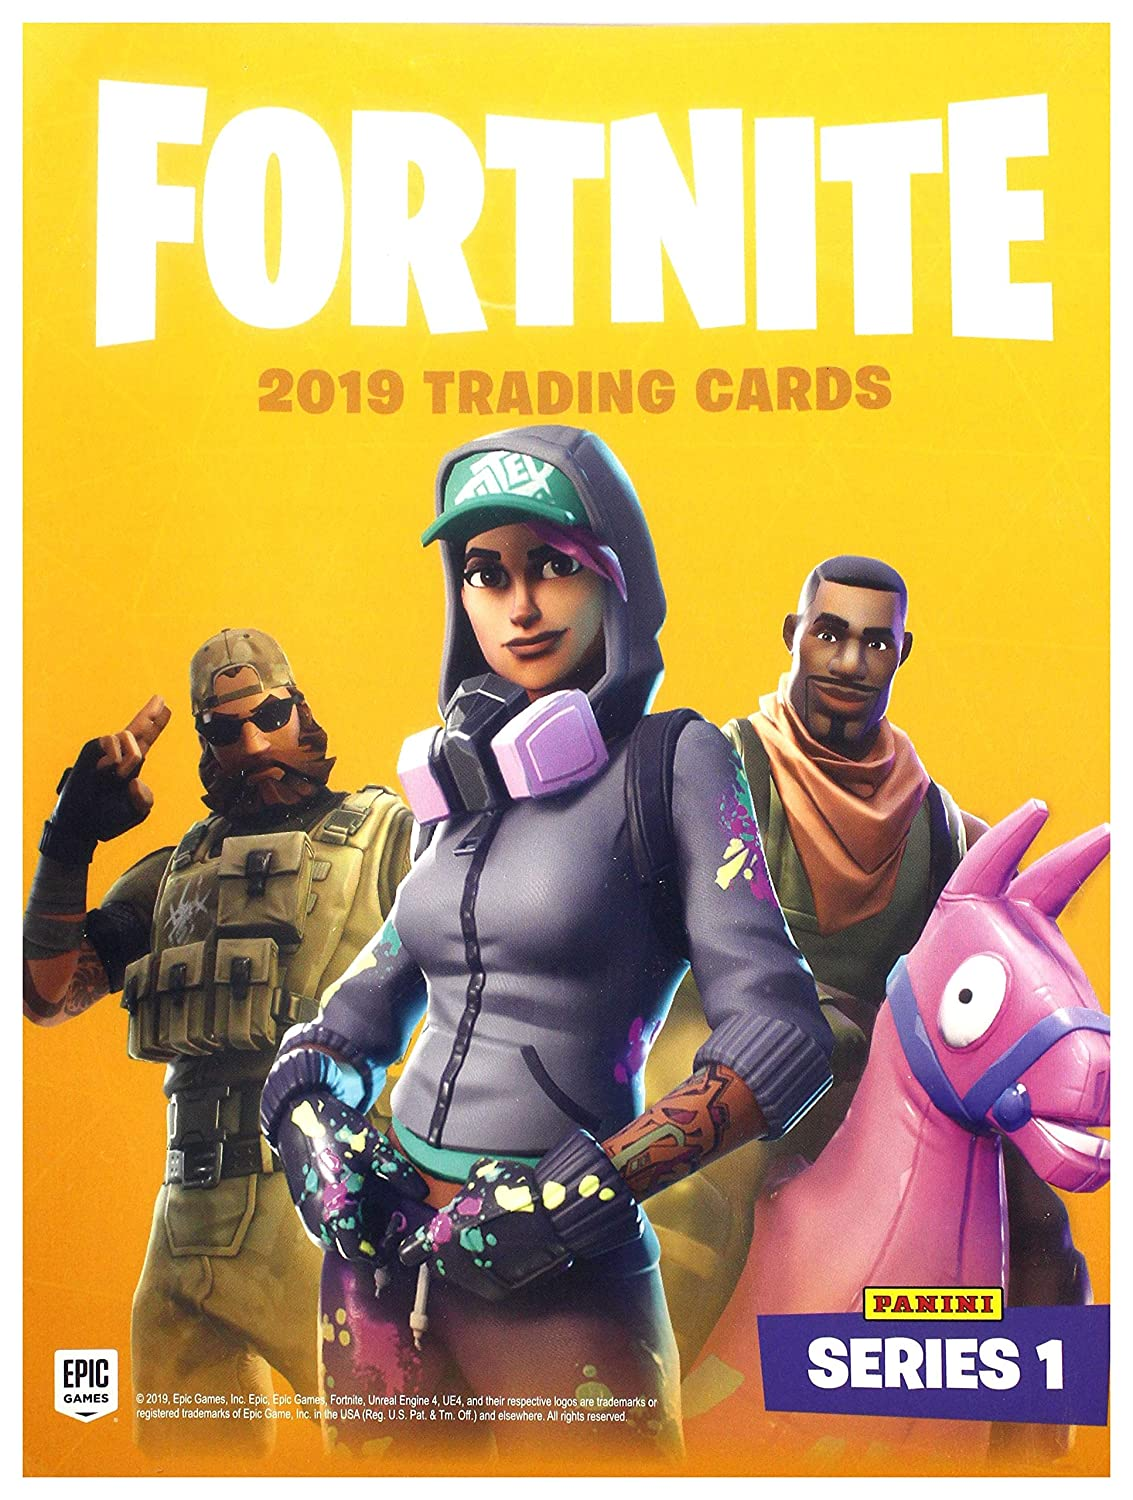 Panini Trading Cards Fortnite (Carpeta): Amazon.es: Juguetes ...